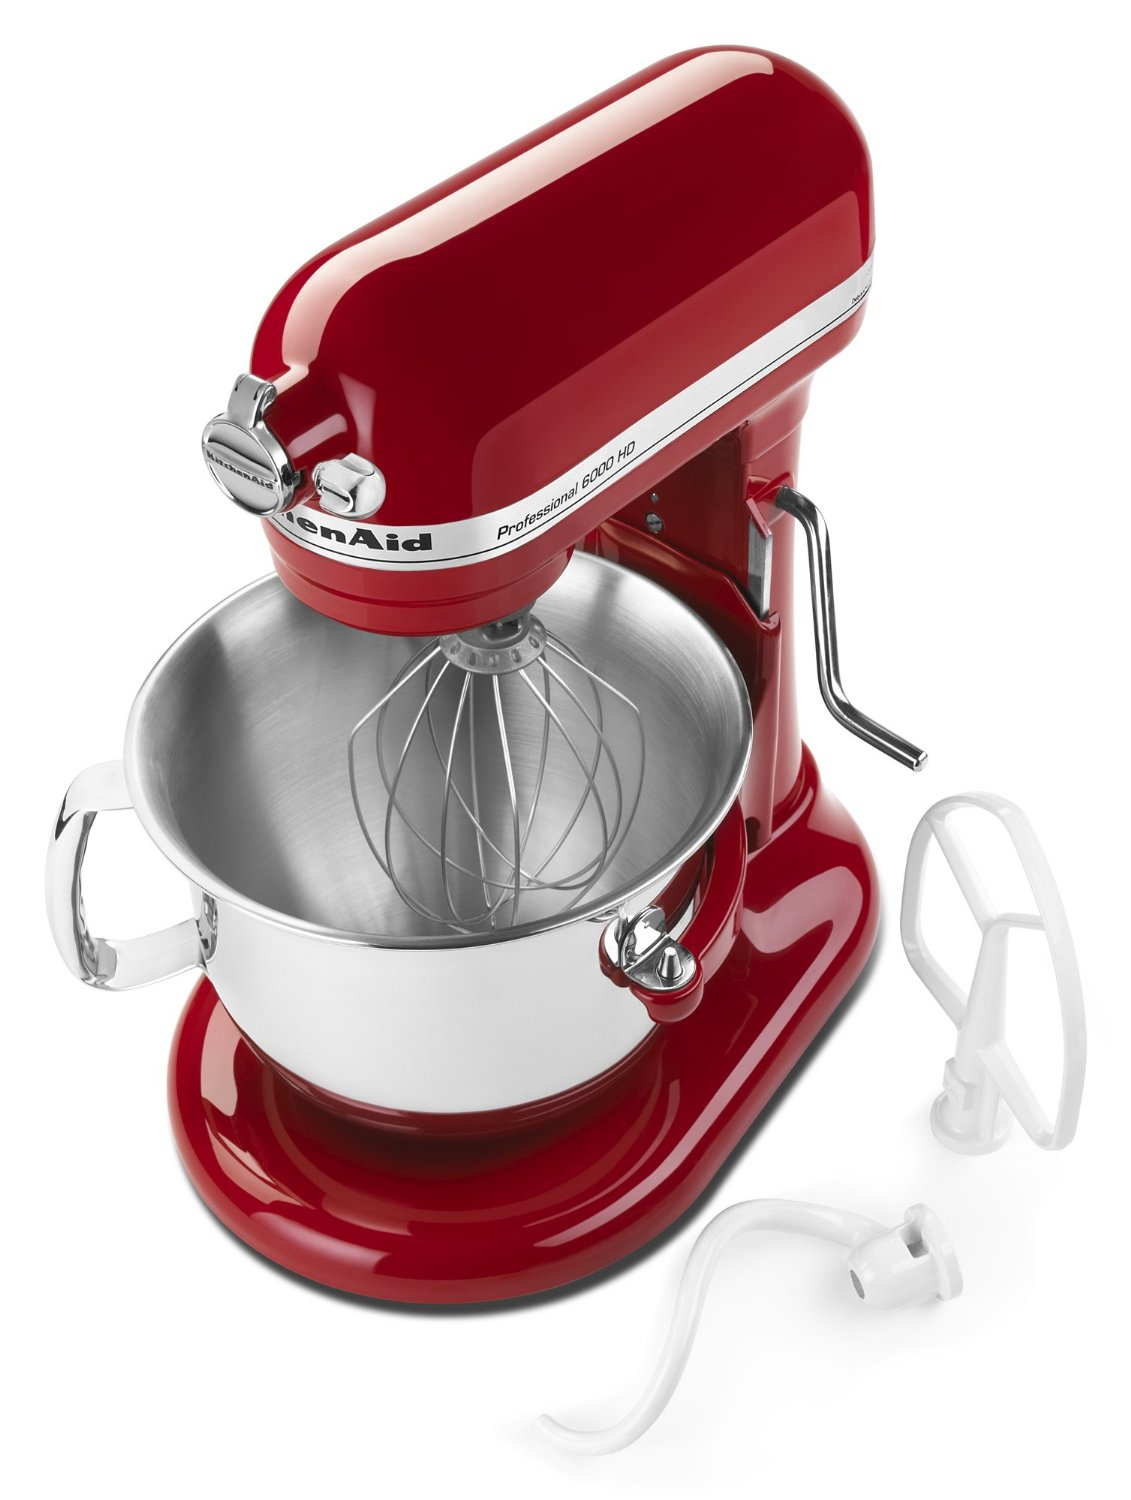 Kitchenaid 6qt Professional 6000 Hd Bowl Lift Stand Mixer